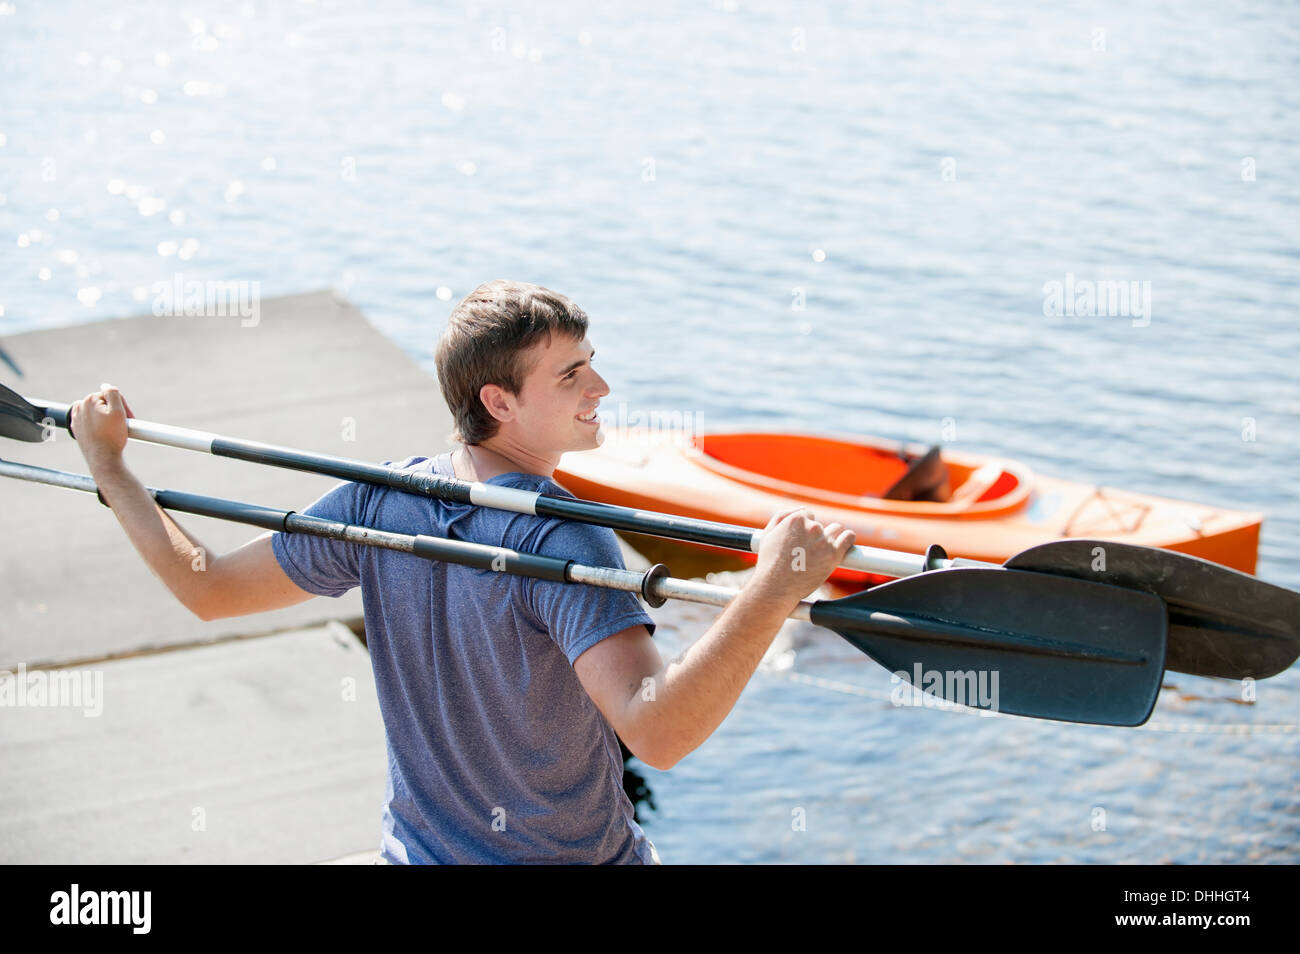 Young man holding canoe oars on shoulders - Stock Image